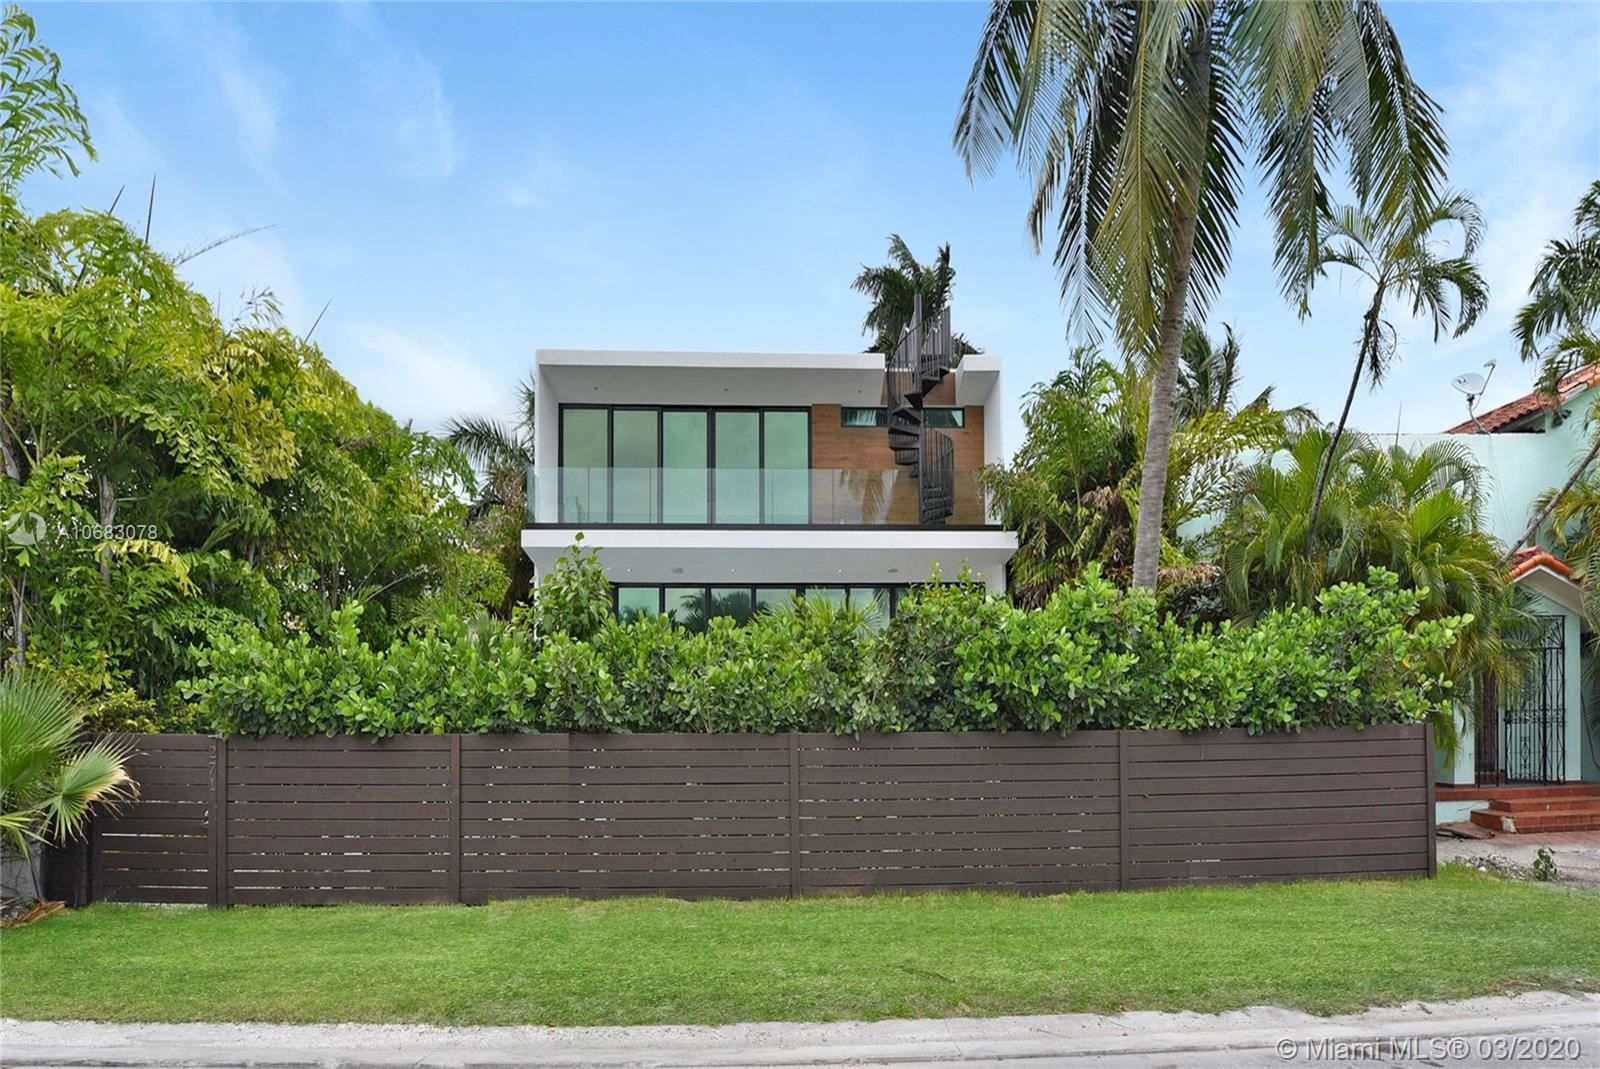 Photo 15 of Listing MLS a10683078 in 272 Palm Ave Miami Beach FL 33139